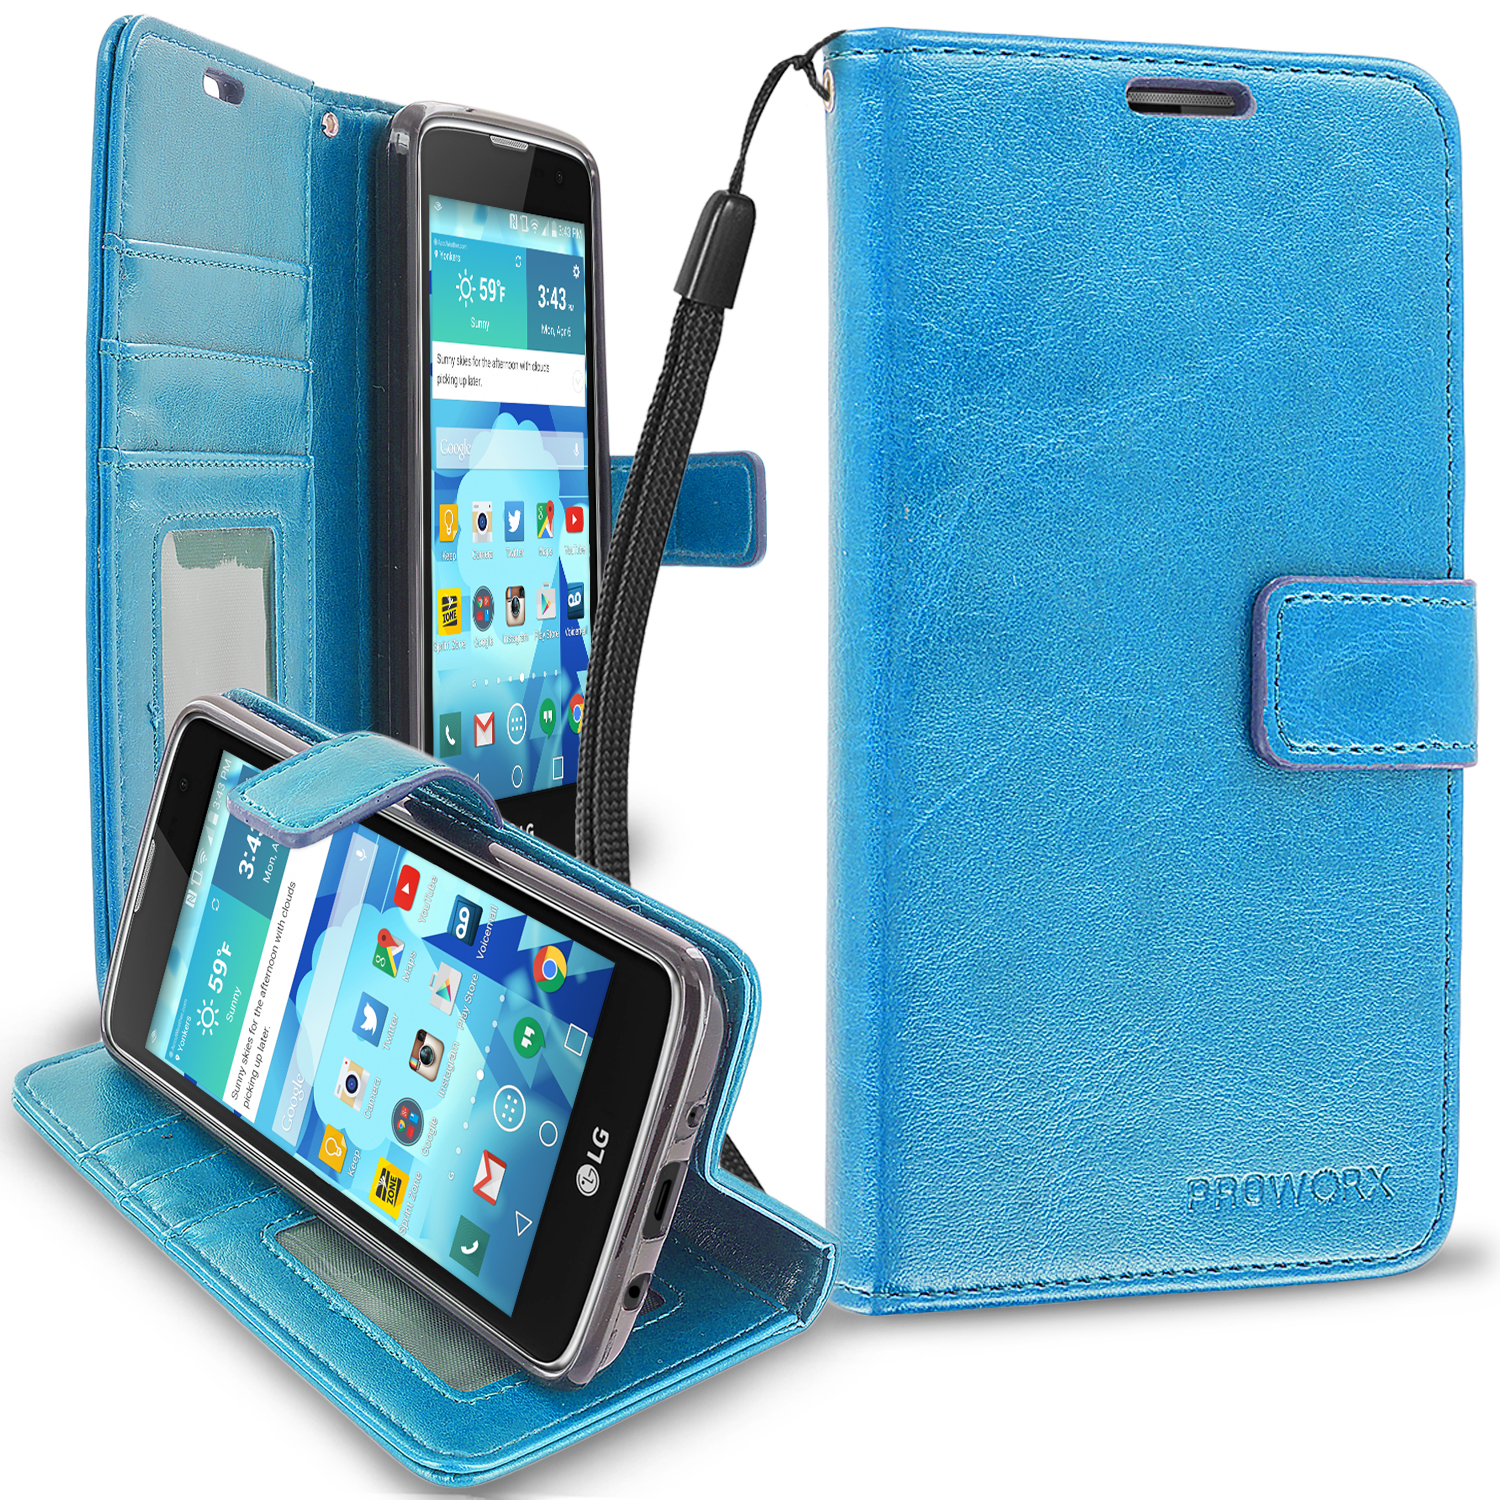 LG Tribute 5 K7 Baby Blue ProWorx Wallet Case Luxury PU Leather Case Cover With Card Slots & Stand